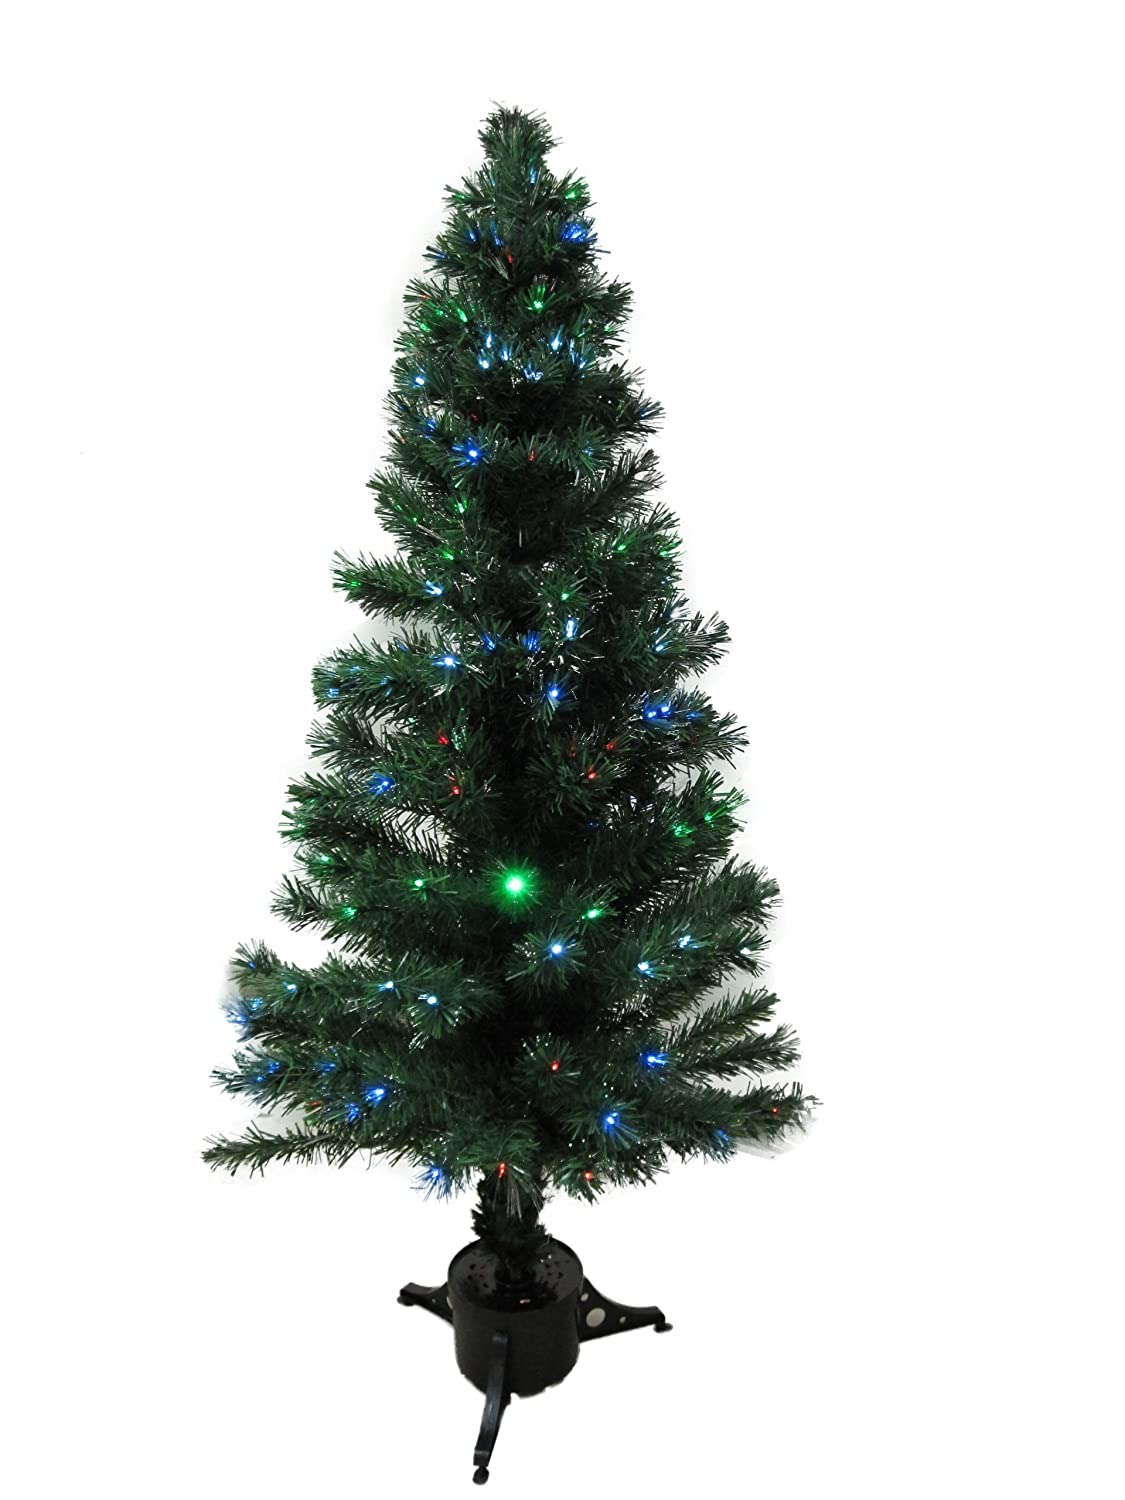 Christmas Trees 5.5' Green Pre-Lit Artificial Fiber Optic Lighted Christmas Tree + MULTICOLOR LED Lights Home Decoration at Sears.com